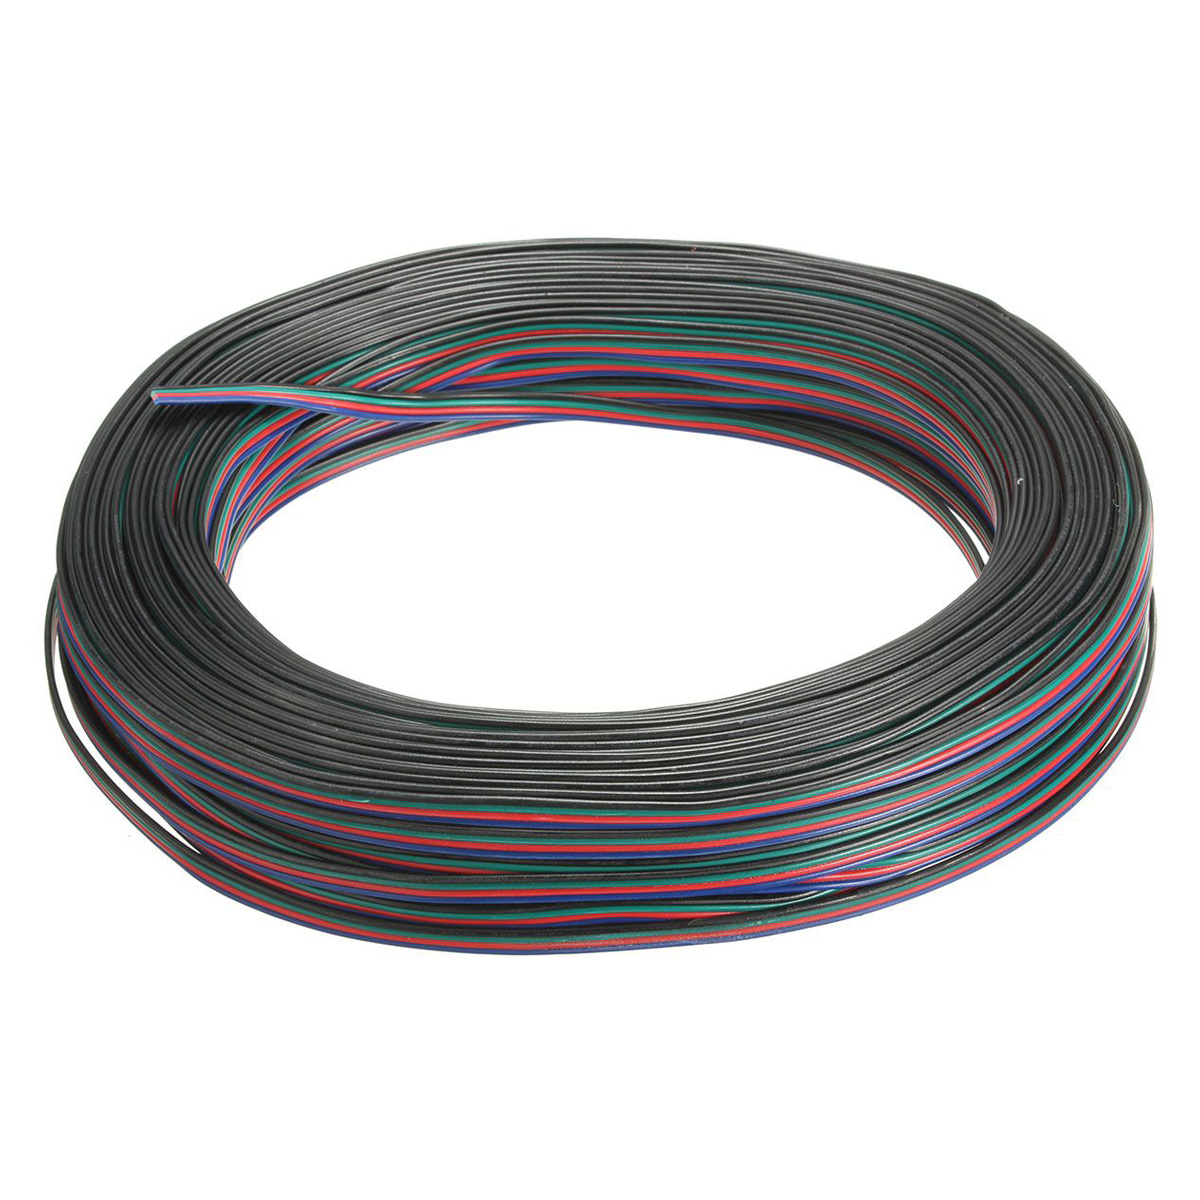 Top quality 4 Pin Wire Extension Connector Cable Cord For LED RGB Strip 3528 5050 Connector Colourful 50M